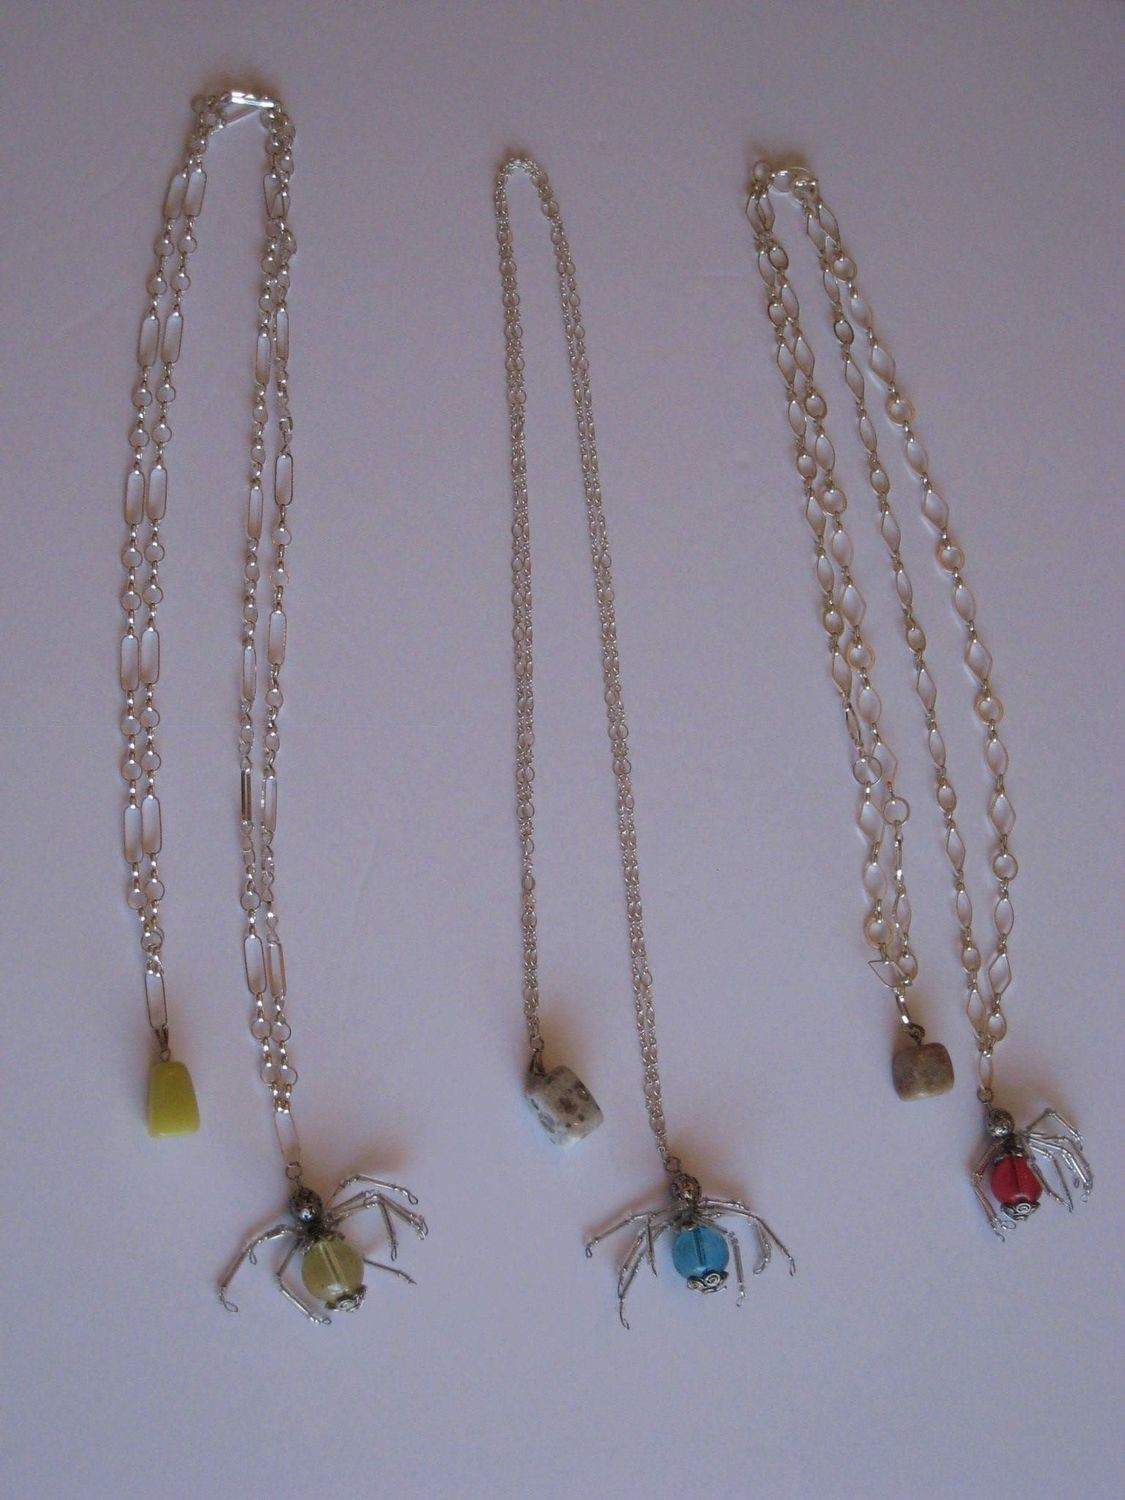 3 SPINNER NECKLACES/ 3 ARAIGNEE COLLIERS